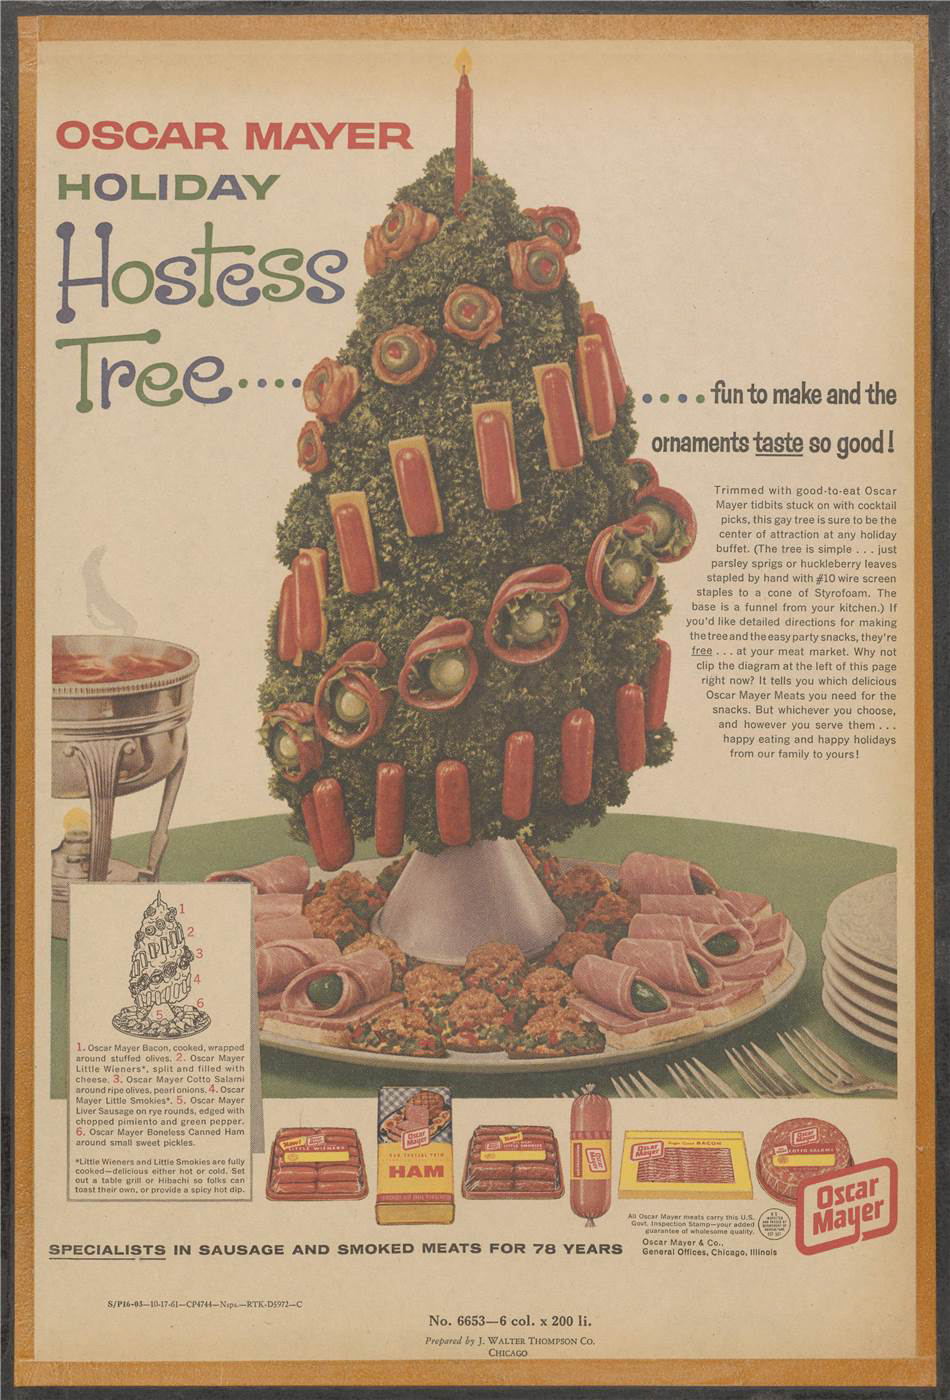 """Oscar Mayer Holiday Hostess Tree."" Artwork of ""tree"" on a table constructed from parsley and decorated with Oscar Mayer products. Labelled diagram identifies the products. Text states that this tree is sure to be the centre of attention, and offers free directions for constructing this festive edifice."